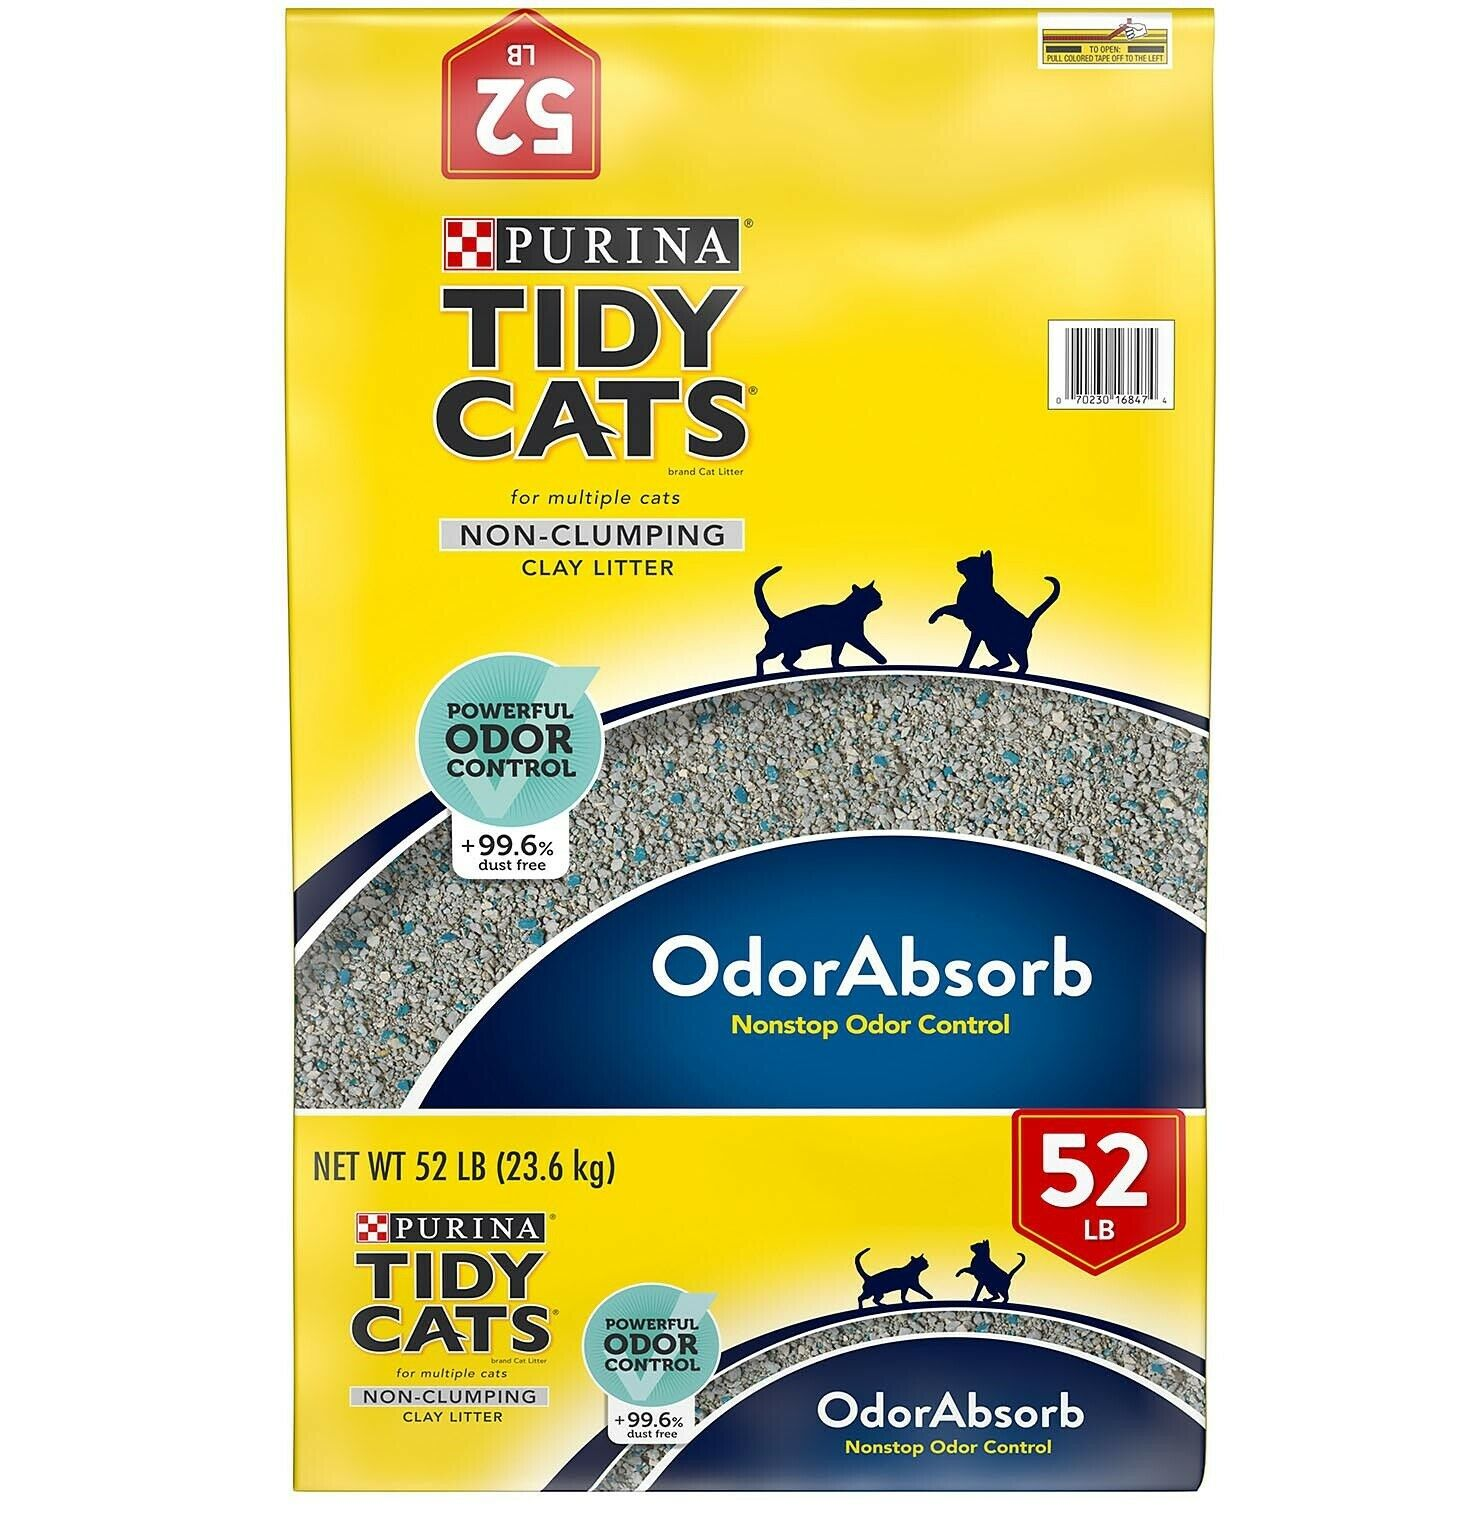 Purina Tidy Cats Non-Clumping Cat Litter for Multiple Cats